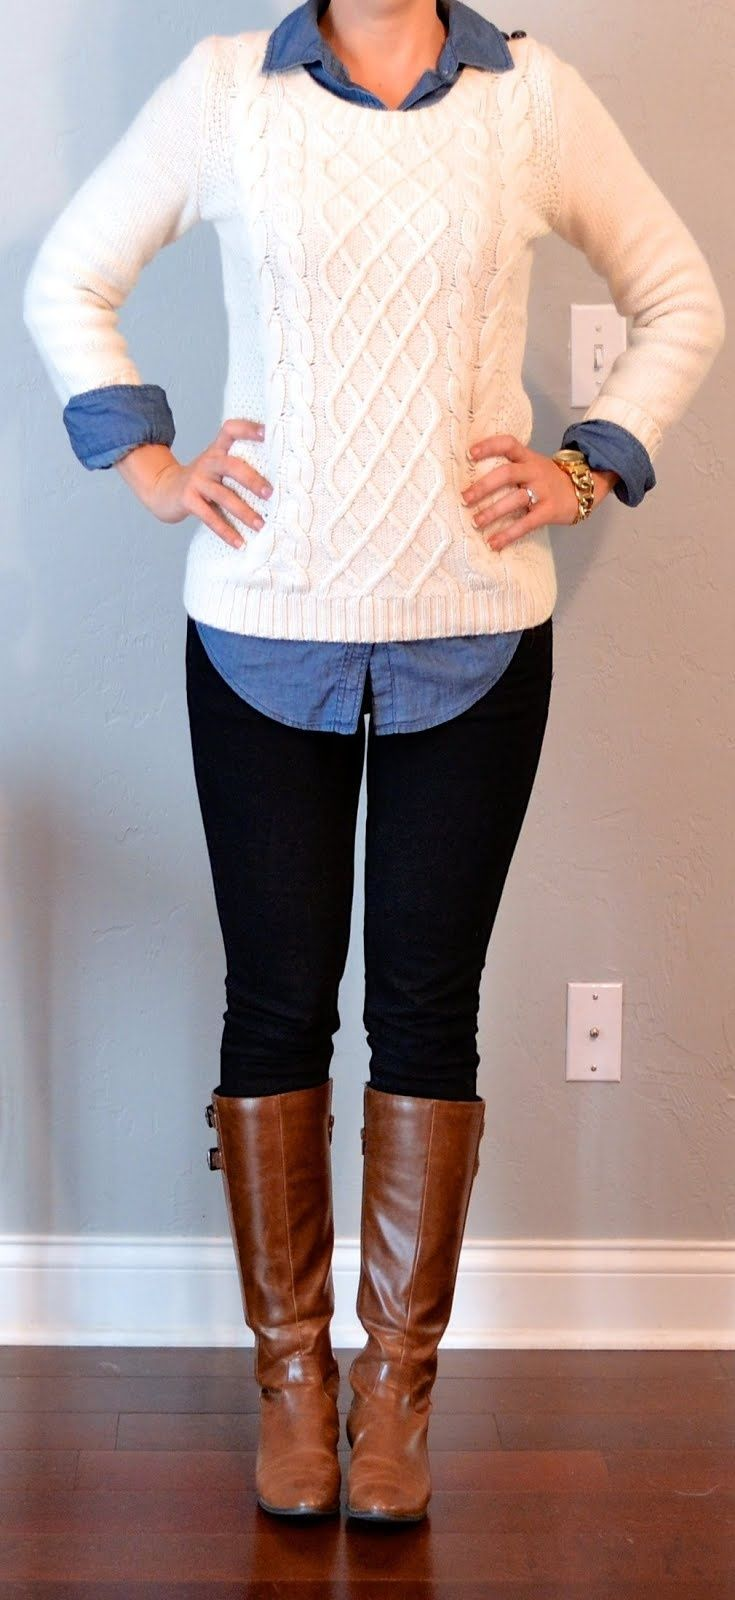 Every girl, especially teenagers, need some fashion hack ideas for ...